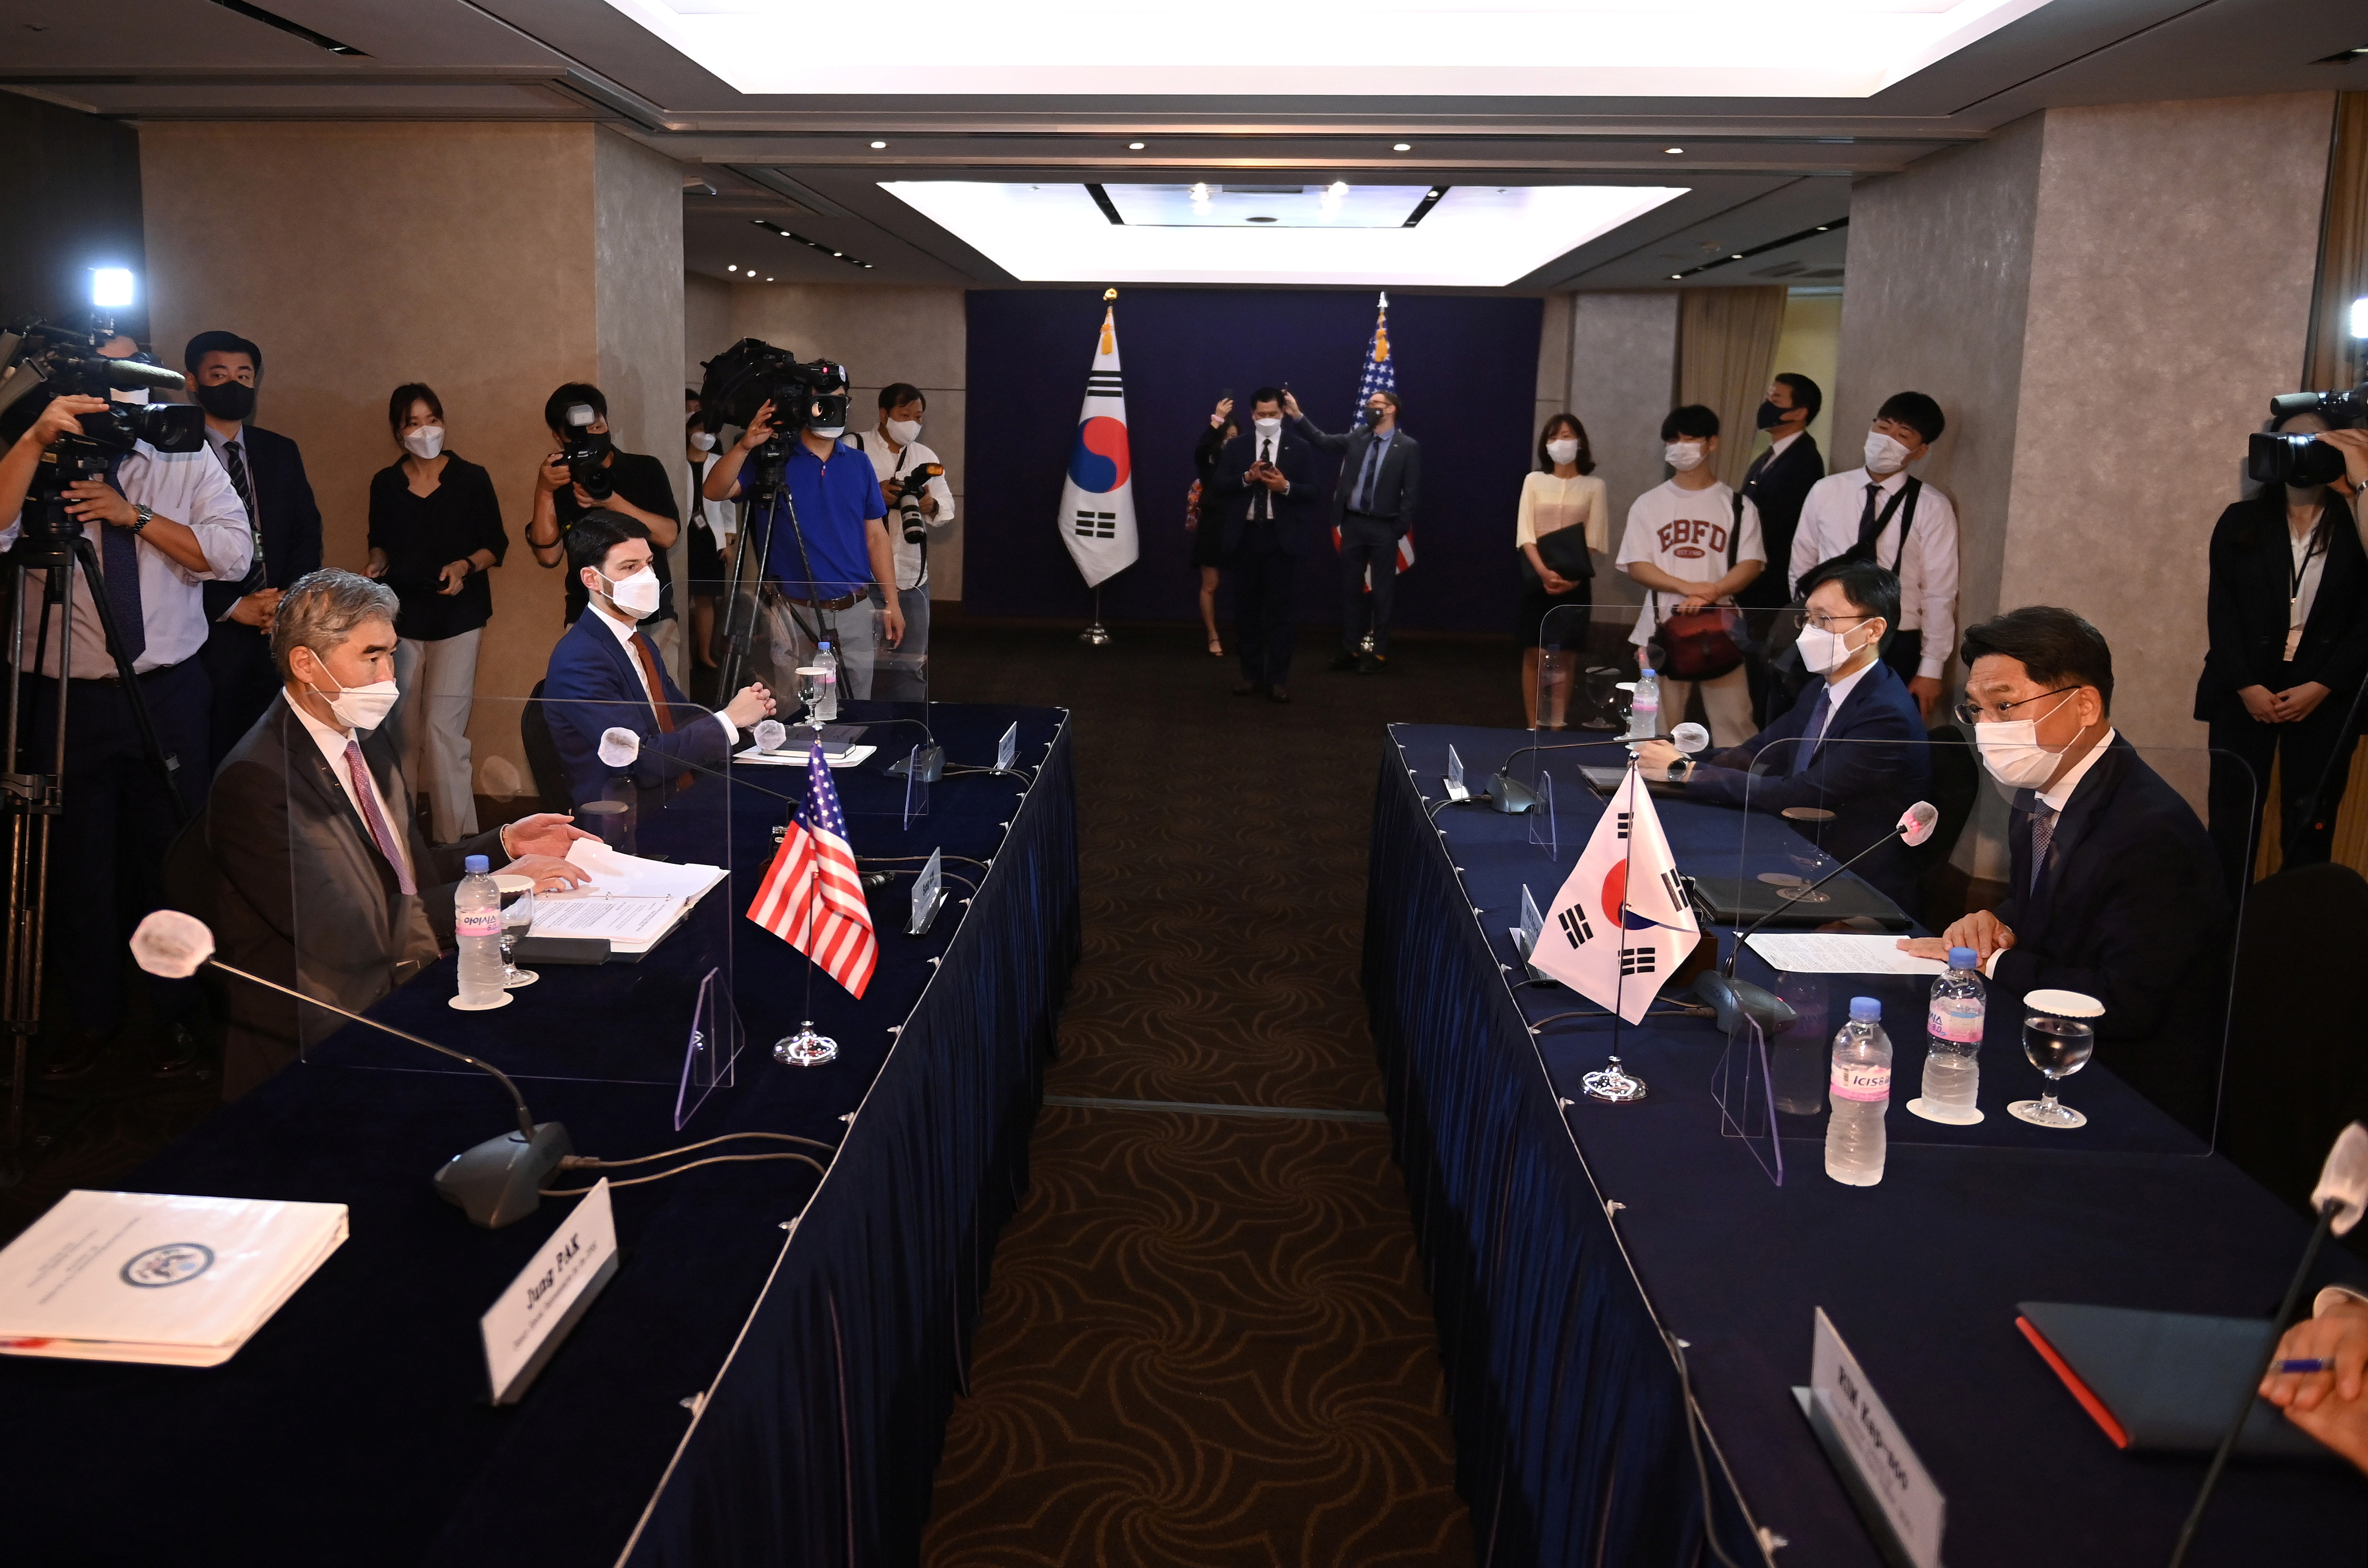 Noh Kyu-duk (R), South Korea's Special Representative for Korean Peninsula Peace and Security Affairs, talks with Sung Kim (L), US Special Representative for North Korea, during their bilateral meeting at a hotel in Seoul , South Korea June 21, 2021. Jung Yeon-Je/Pool via REUTERS